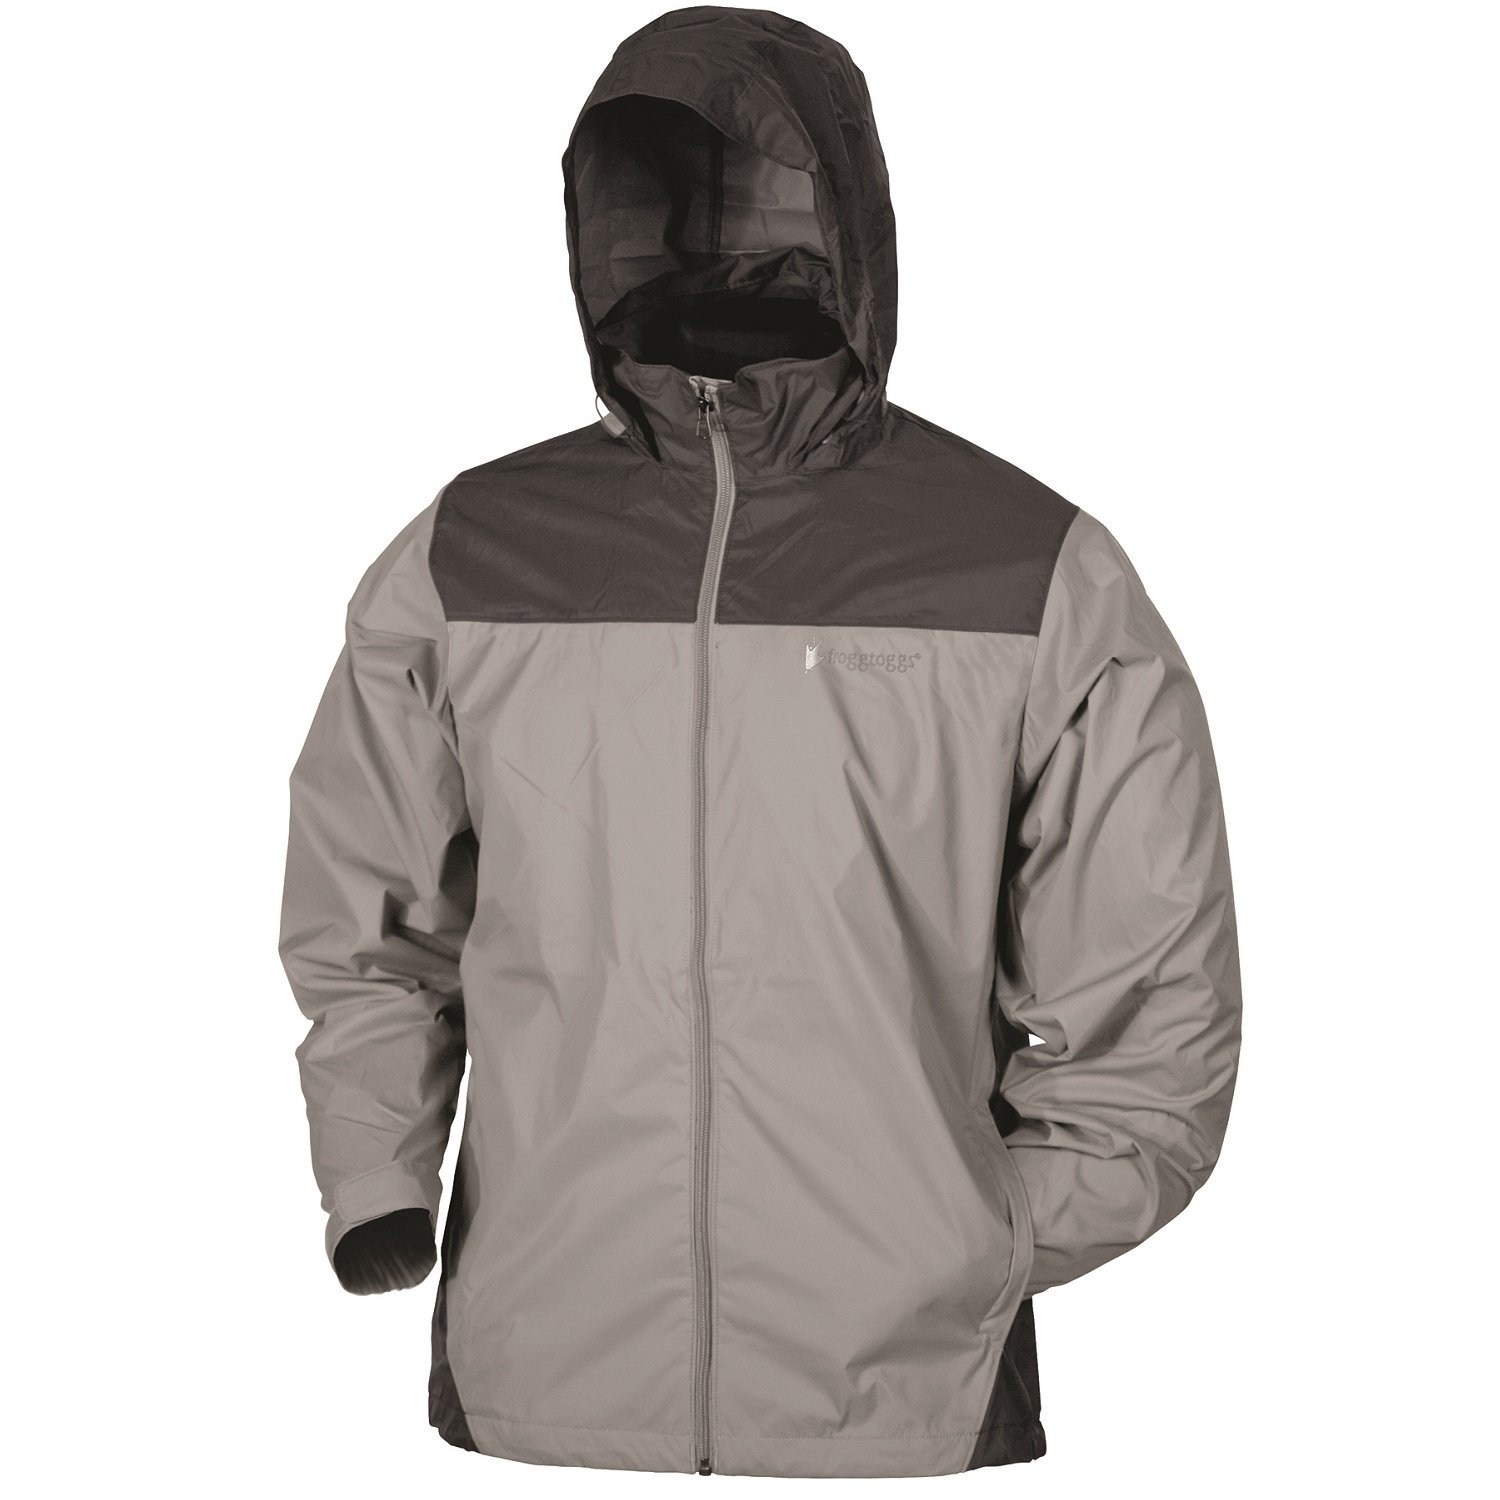 Frogg Toggs River Toadz Pack Jacket, Dove/Charcoal, Size Small by Frogg Toggs (Image #1)